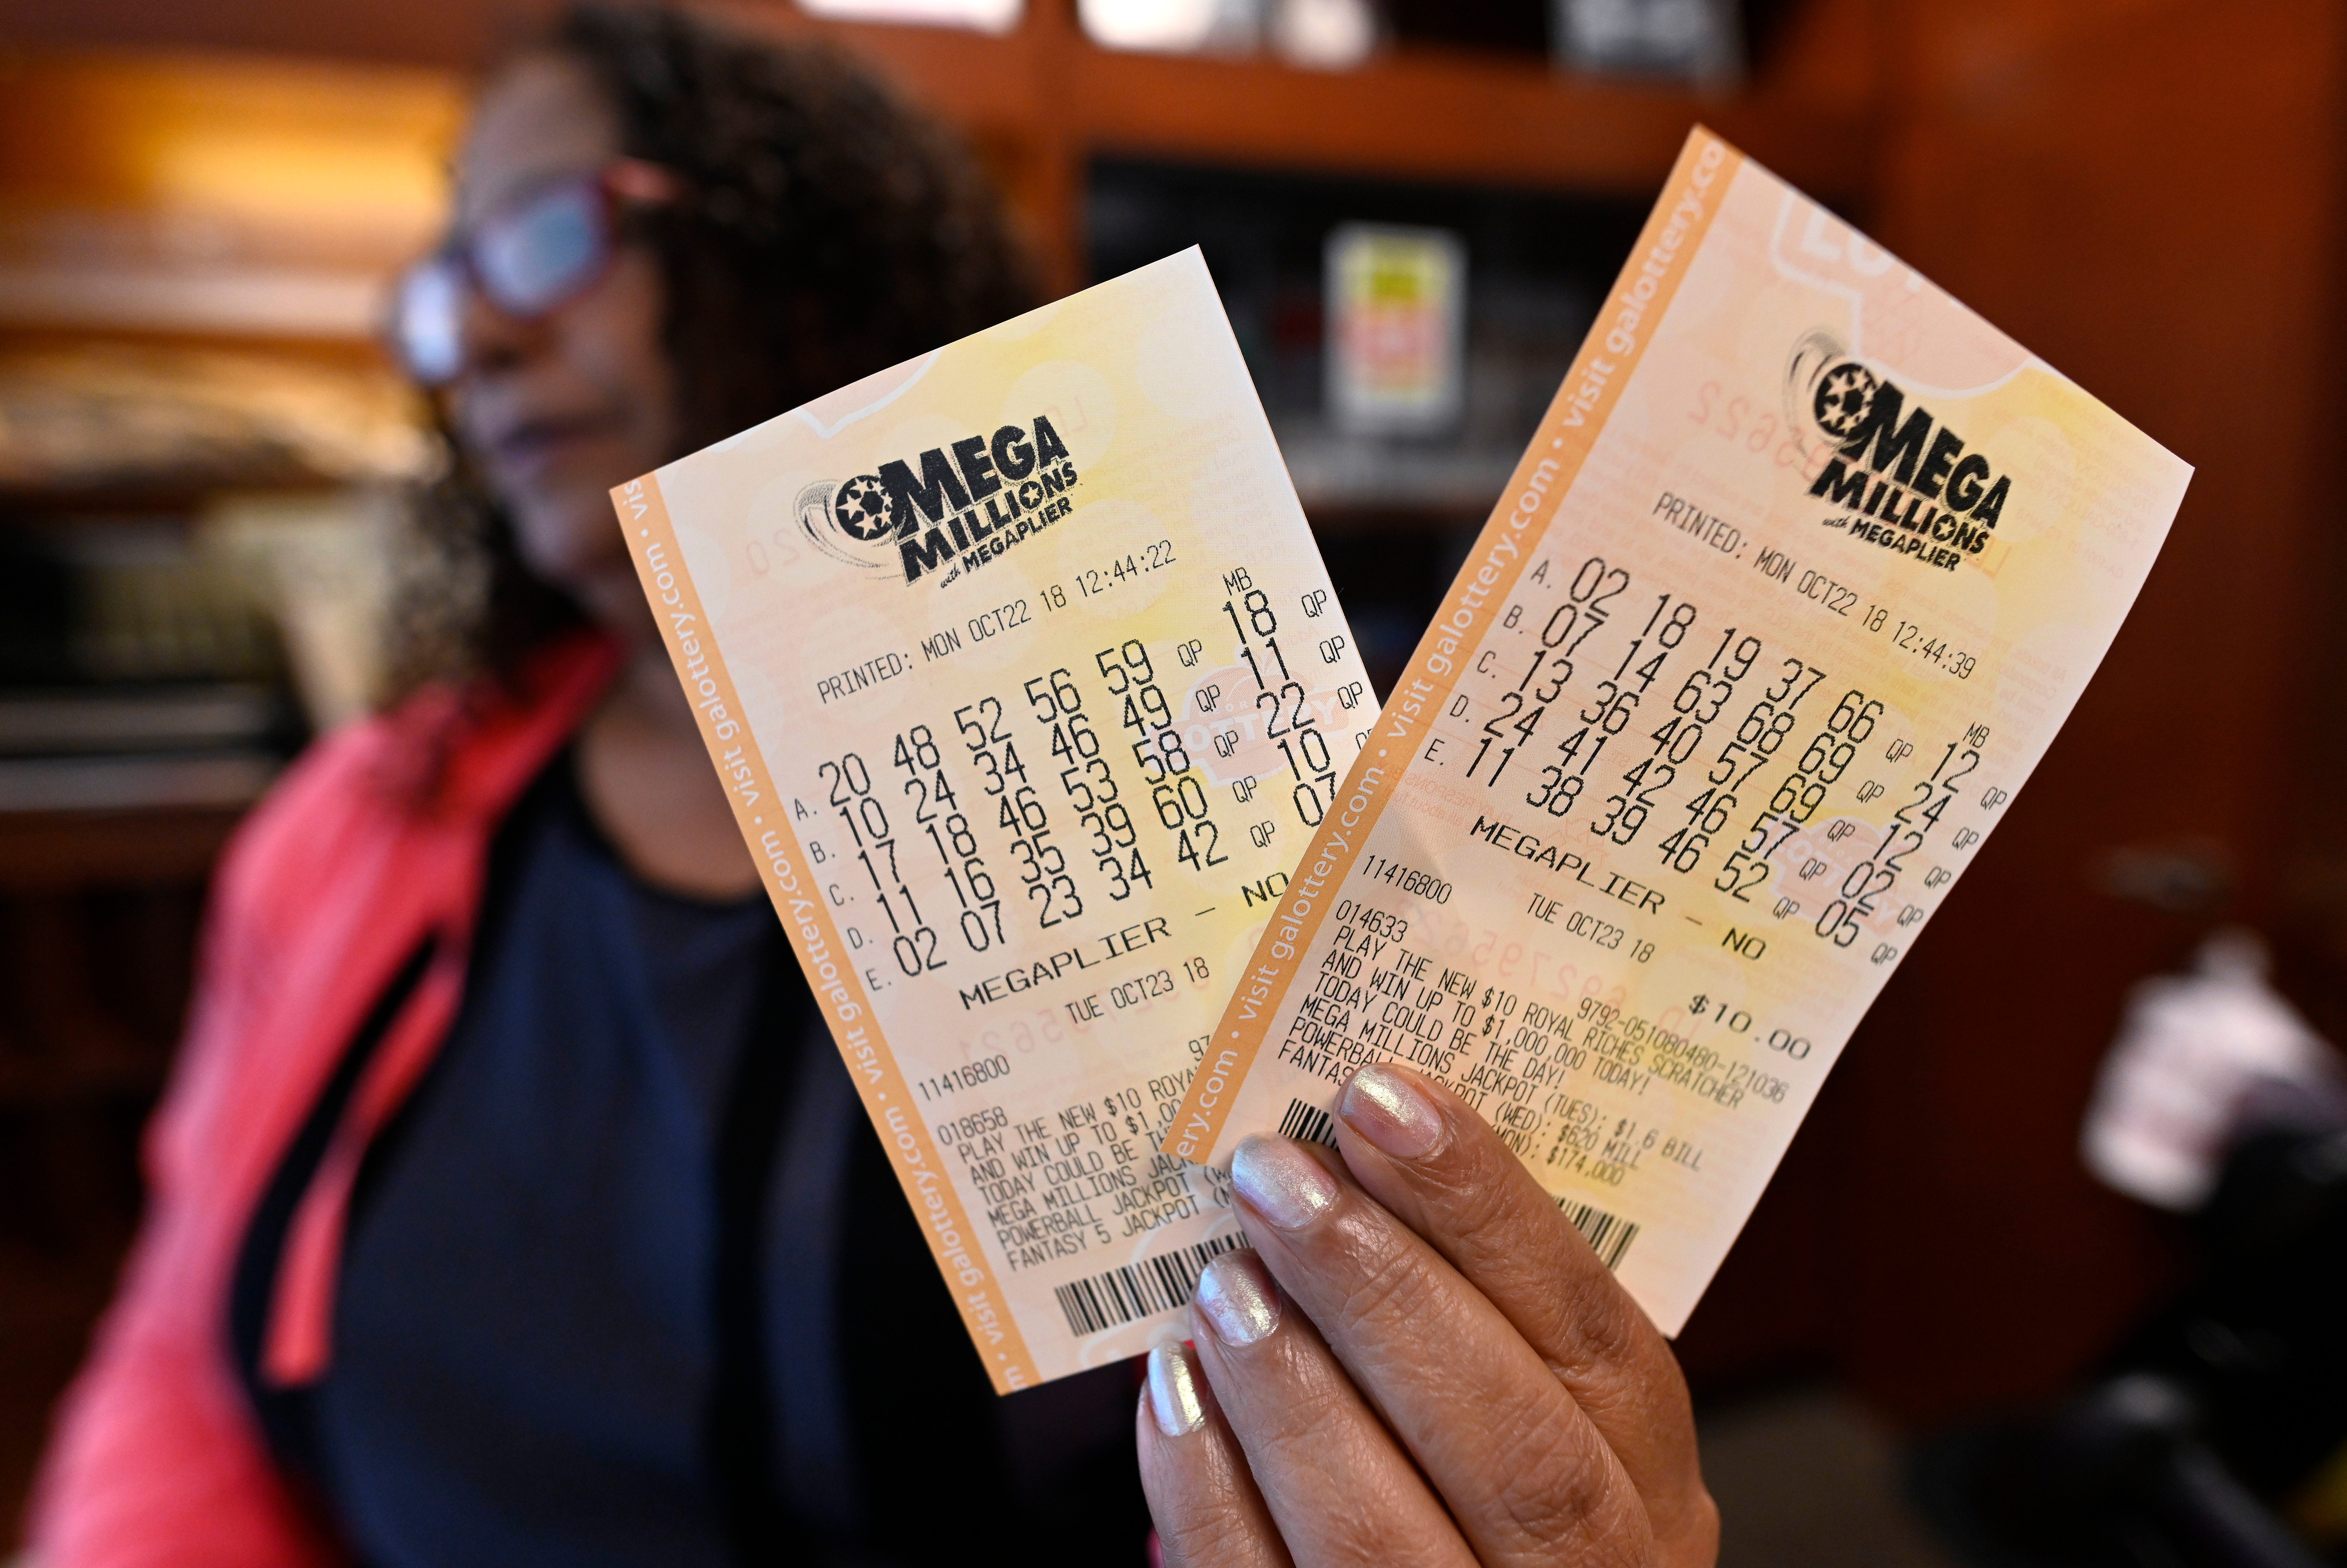 Mega Millions jackpot hits $865M, the third largest in US lottery history. Here are Tuesday s winning numbers.